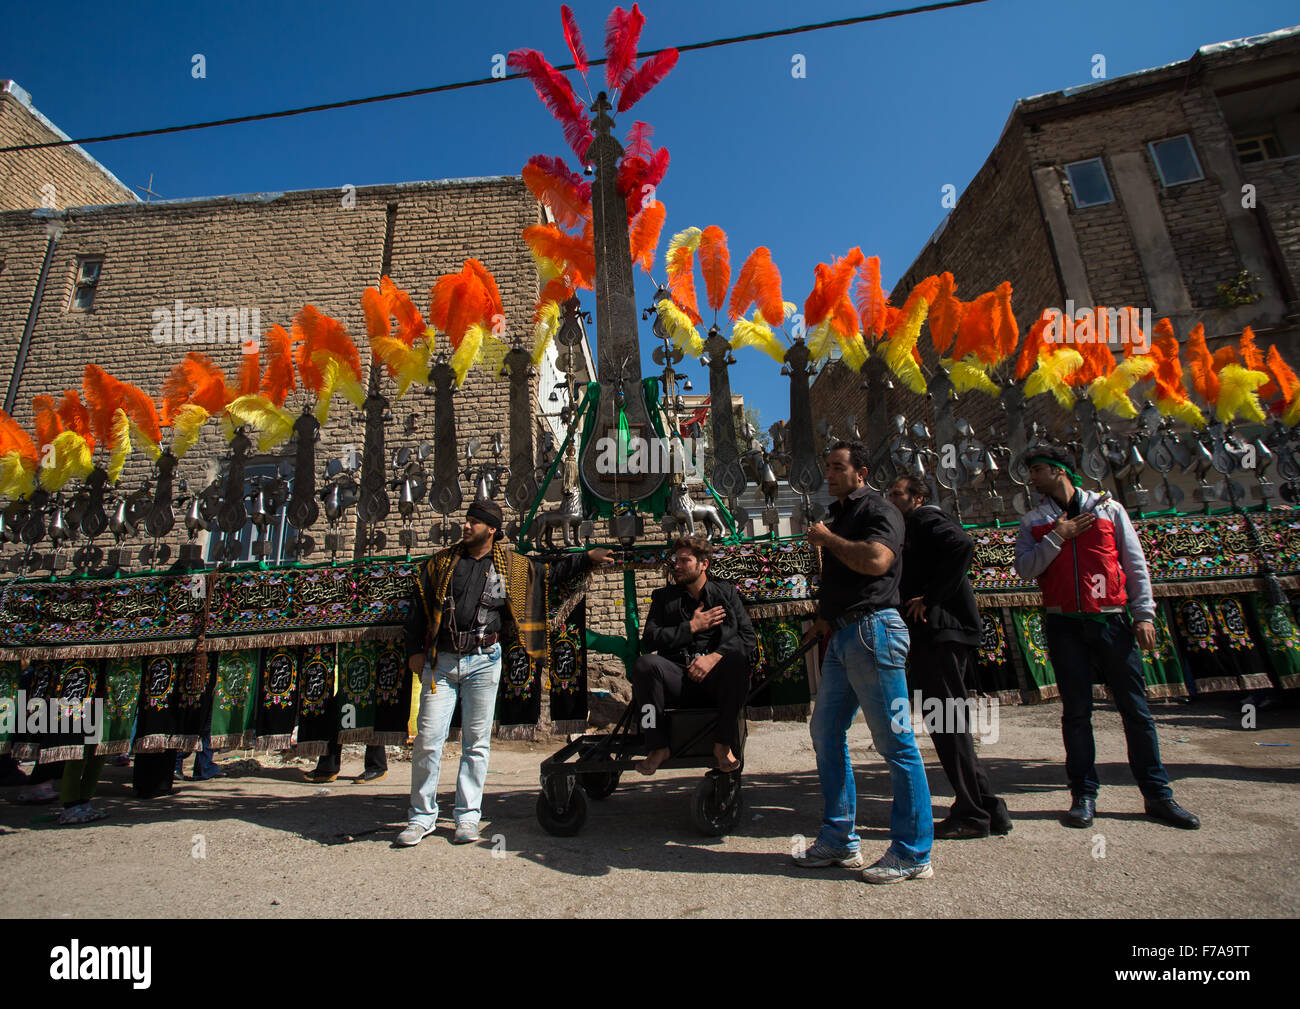 Iranian Shiite Muslims Men In Front Of An An Alam On Tasua Celebration, Lorestan Province, Khorramabad, Iran - Stock Image